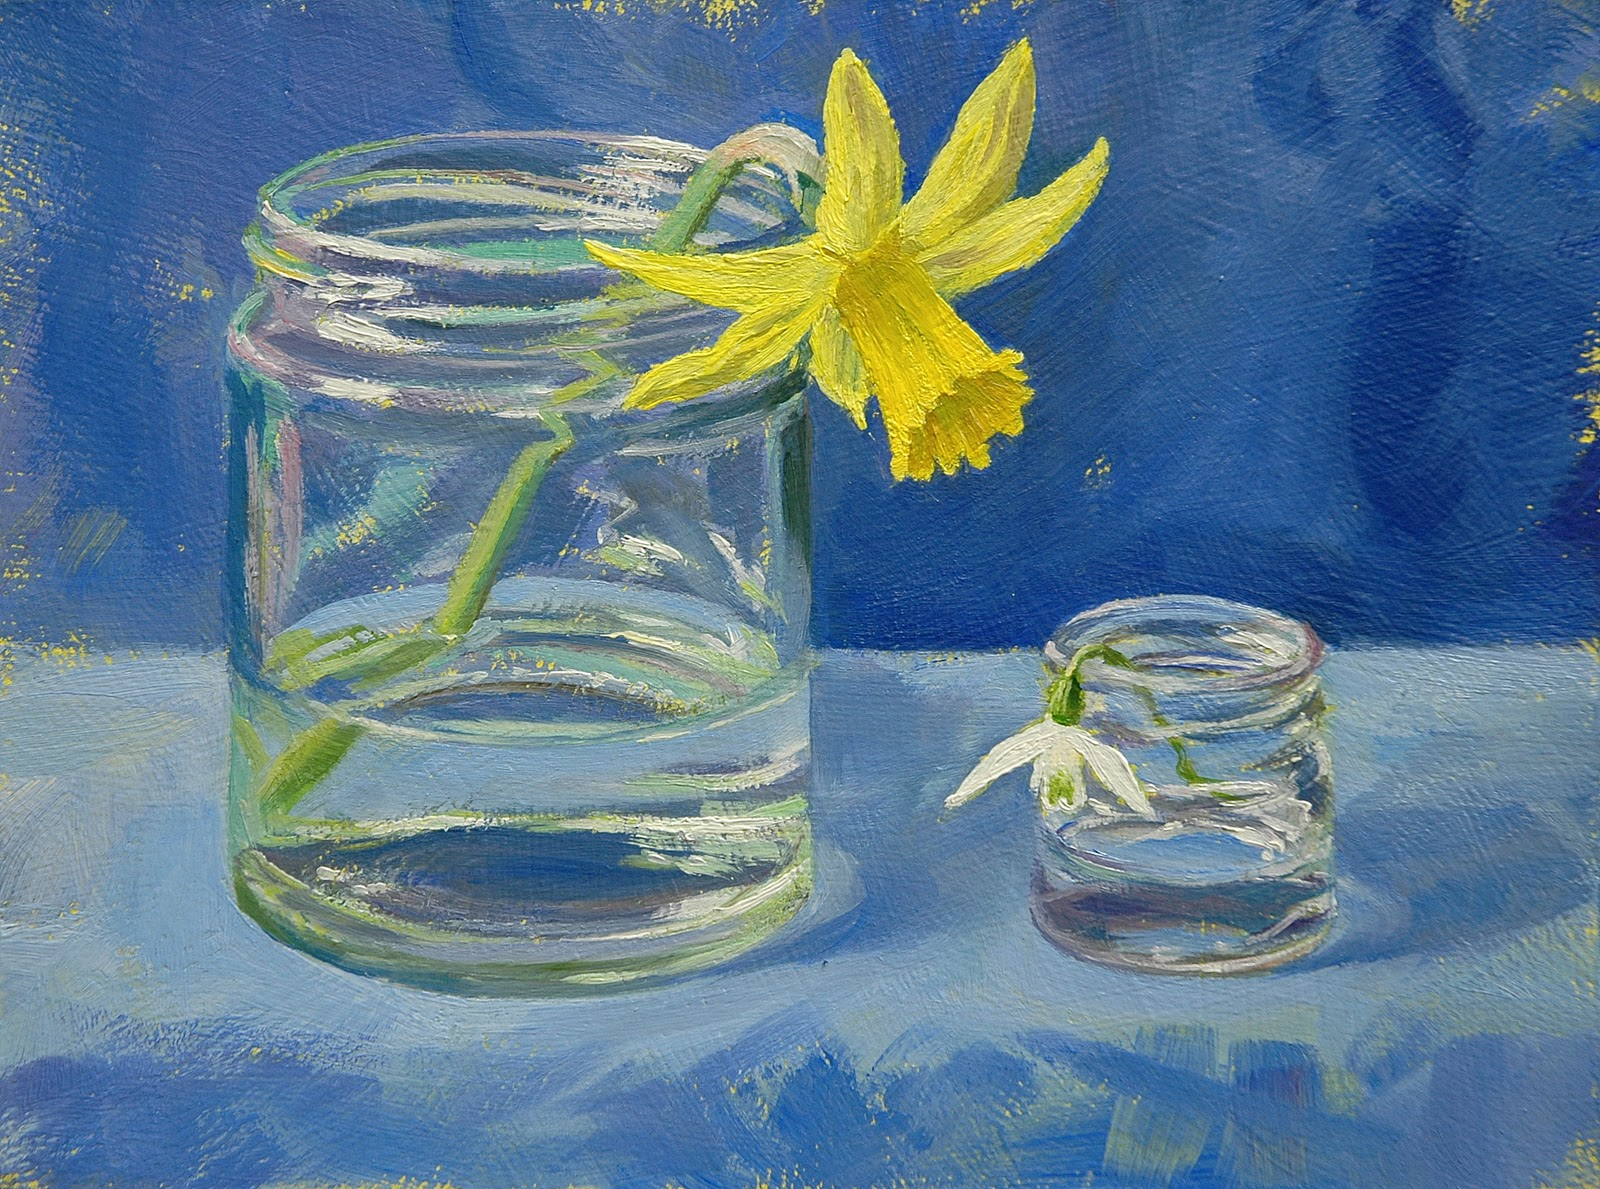 Peter barker 39 s palette march 2011 for How to paint glass with oil paint